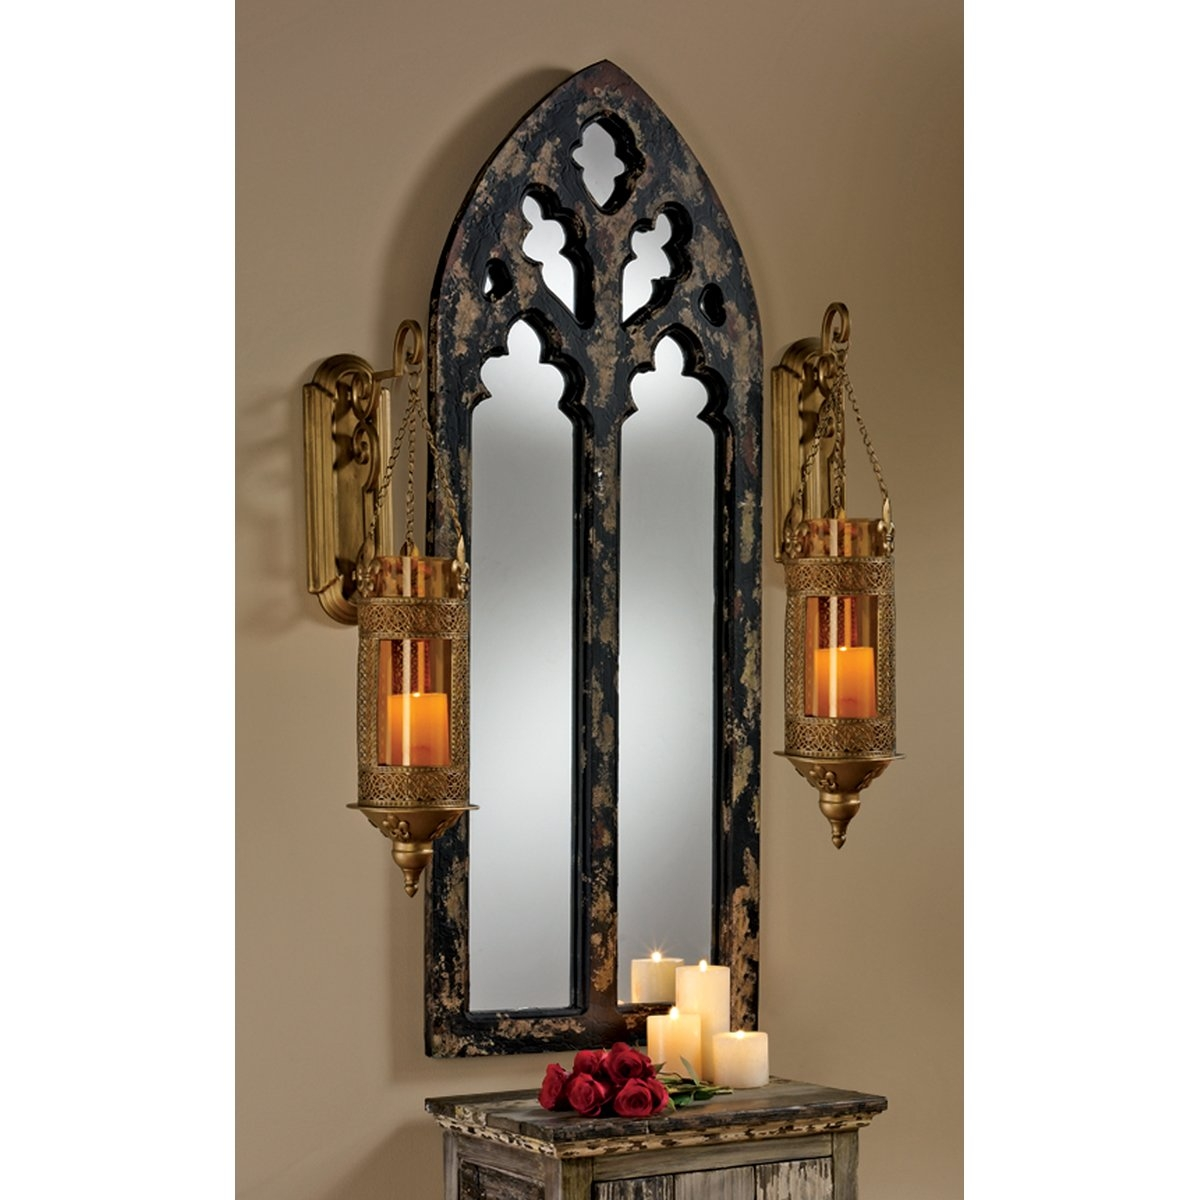 Design Toscano Gothic Cathedral Arch Wall Mirror Reviews Wayfair Regarding Gothic Wall Mirror (Image 6 of 15)